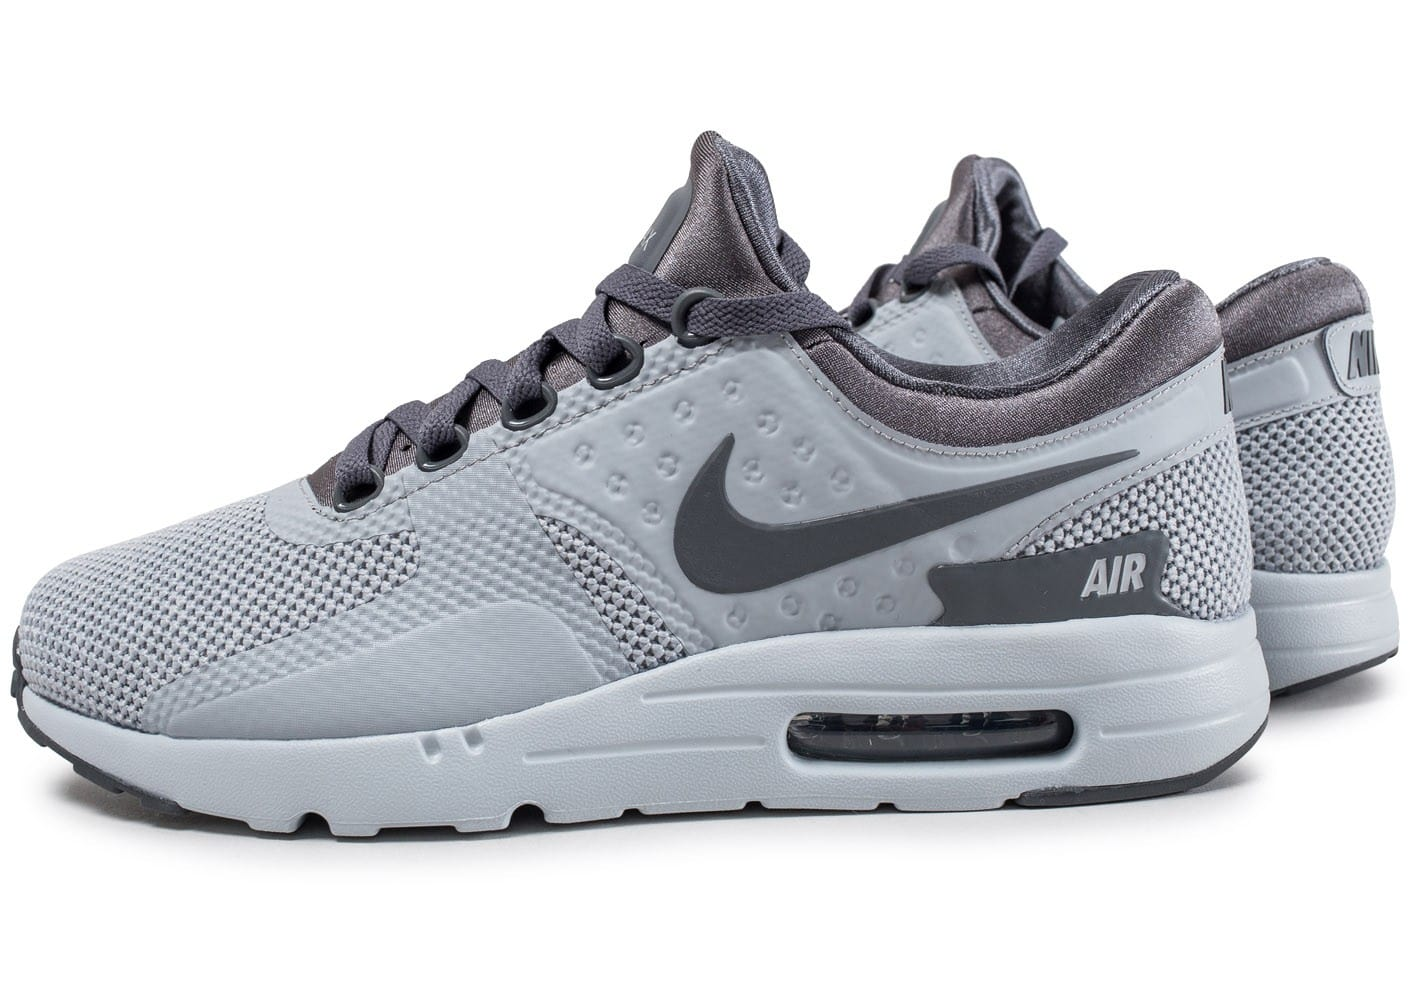 nike air max zero grise chaussures homme chausport. Black Bedroom Furniture Sets. Home Design Ideas